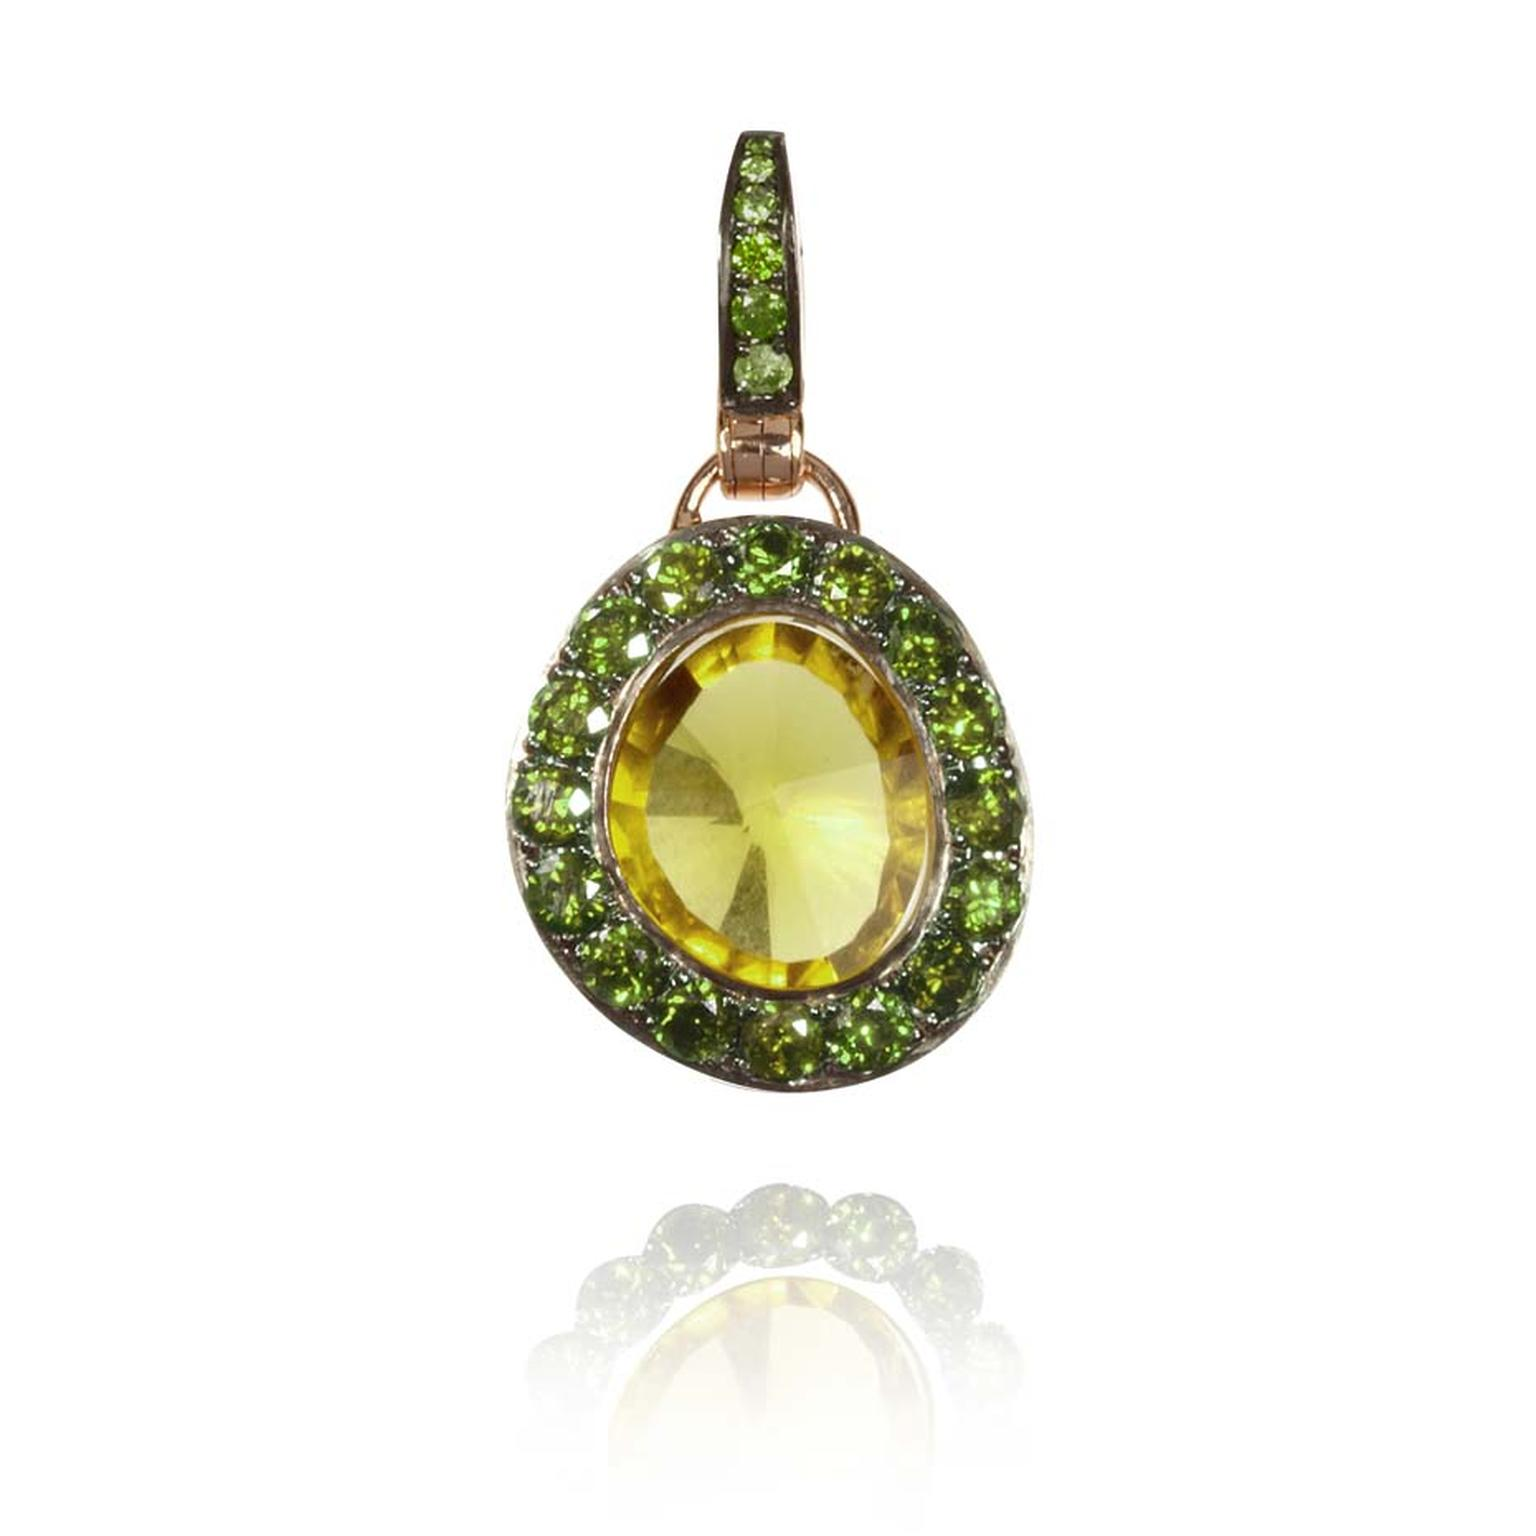 Annoushka Dusty Diamonds rose gold pendant with green diamonds and a centre olive quartz.